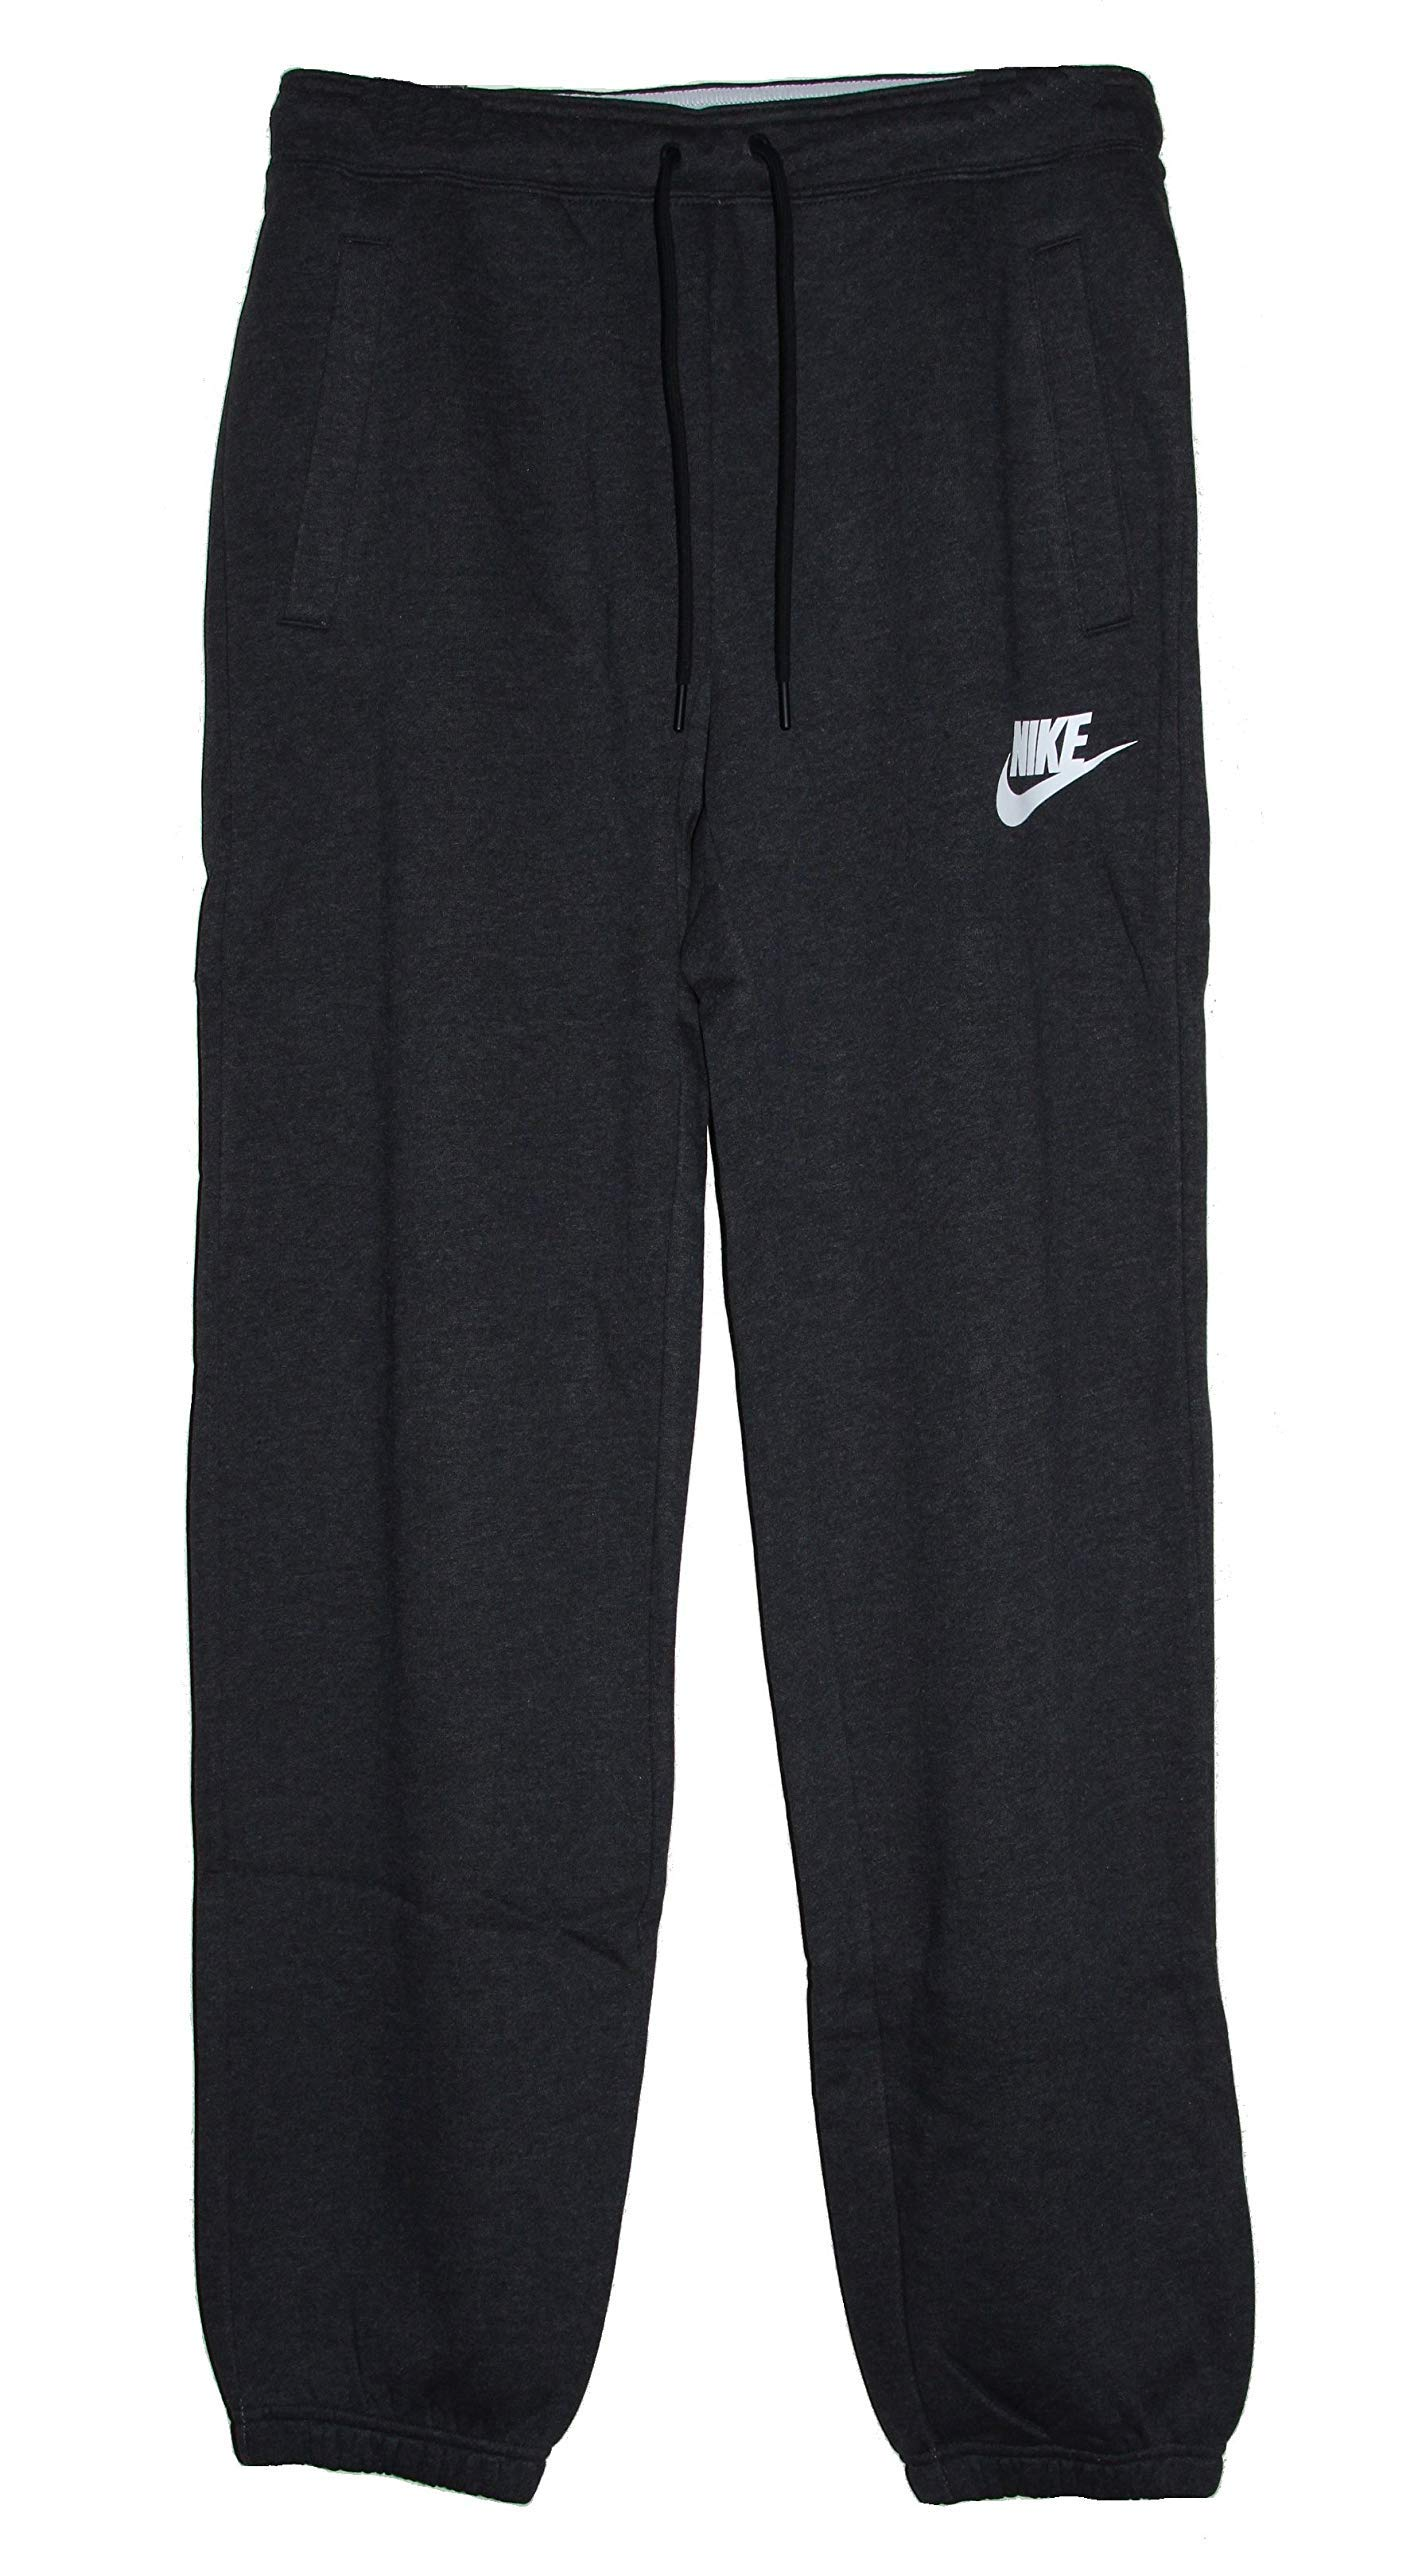 Nike Sportswear Rally Loose Women's Fleece Pants (Black Heather/White, Small)